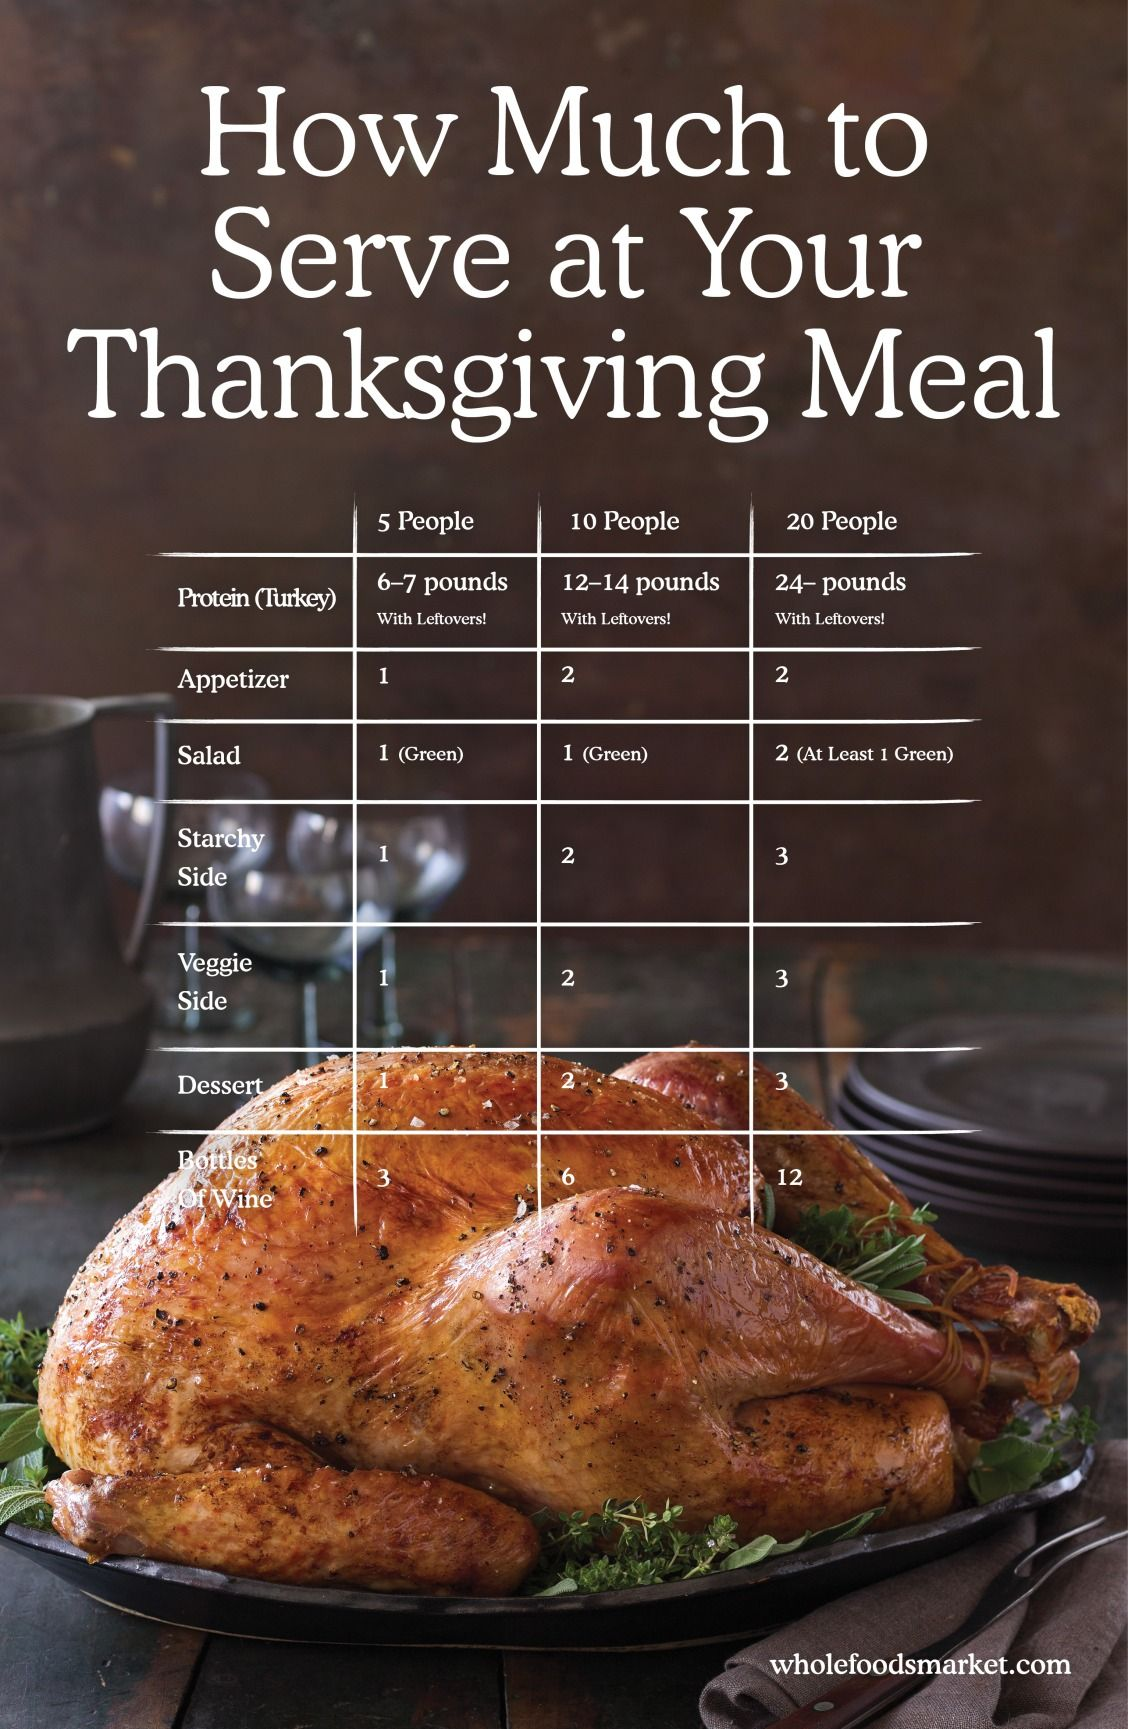 Holiday Servings Calculator Thanksgiving Recipes Thanksgiving Servings Holiday Cooking